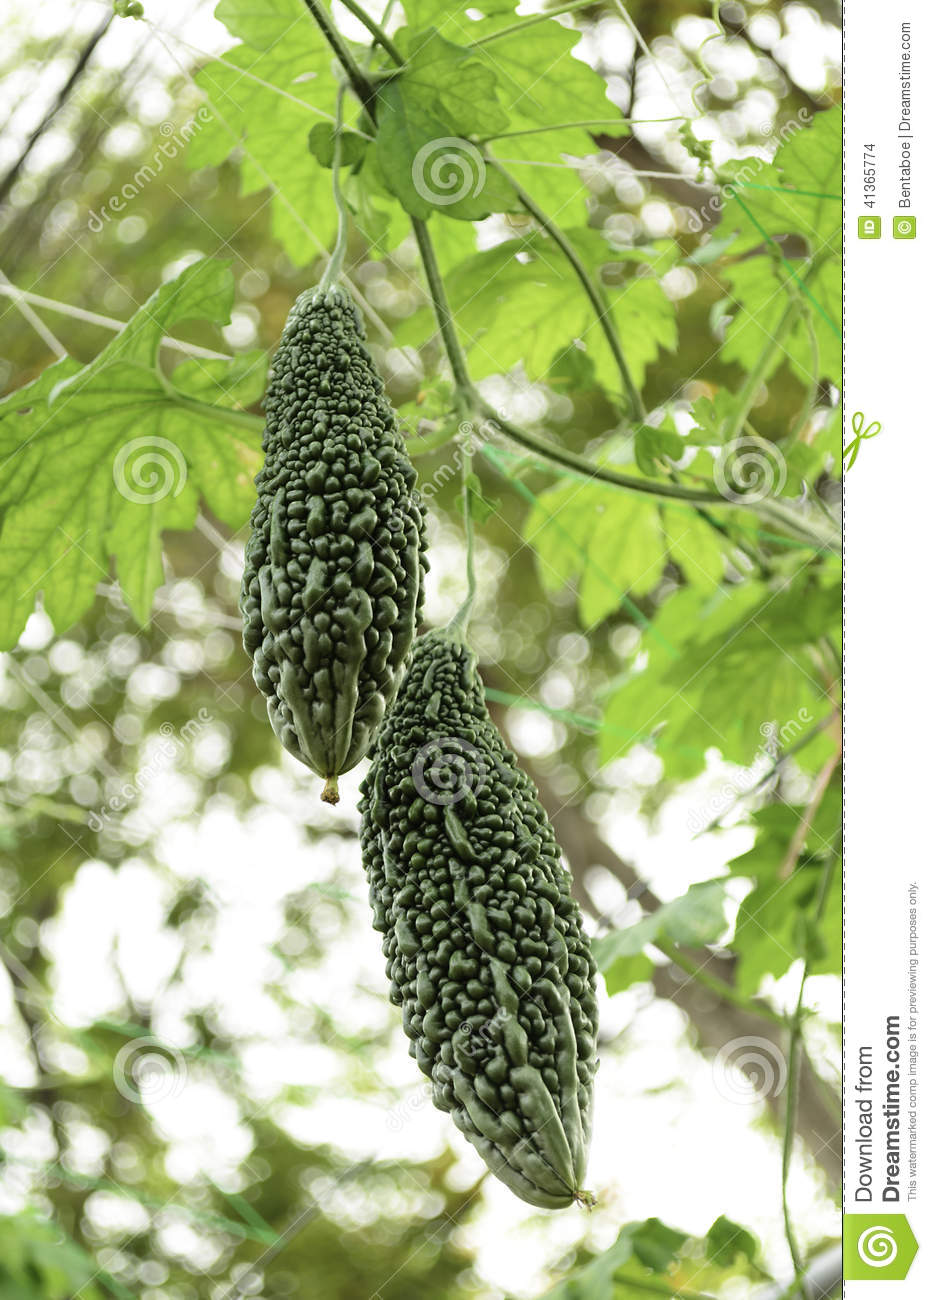 Growing Bitter Melon In The Vegetable Garden: Bitter Melon Growing On A Vine In Garden. Stock Photo